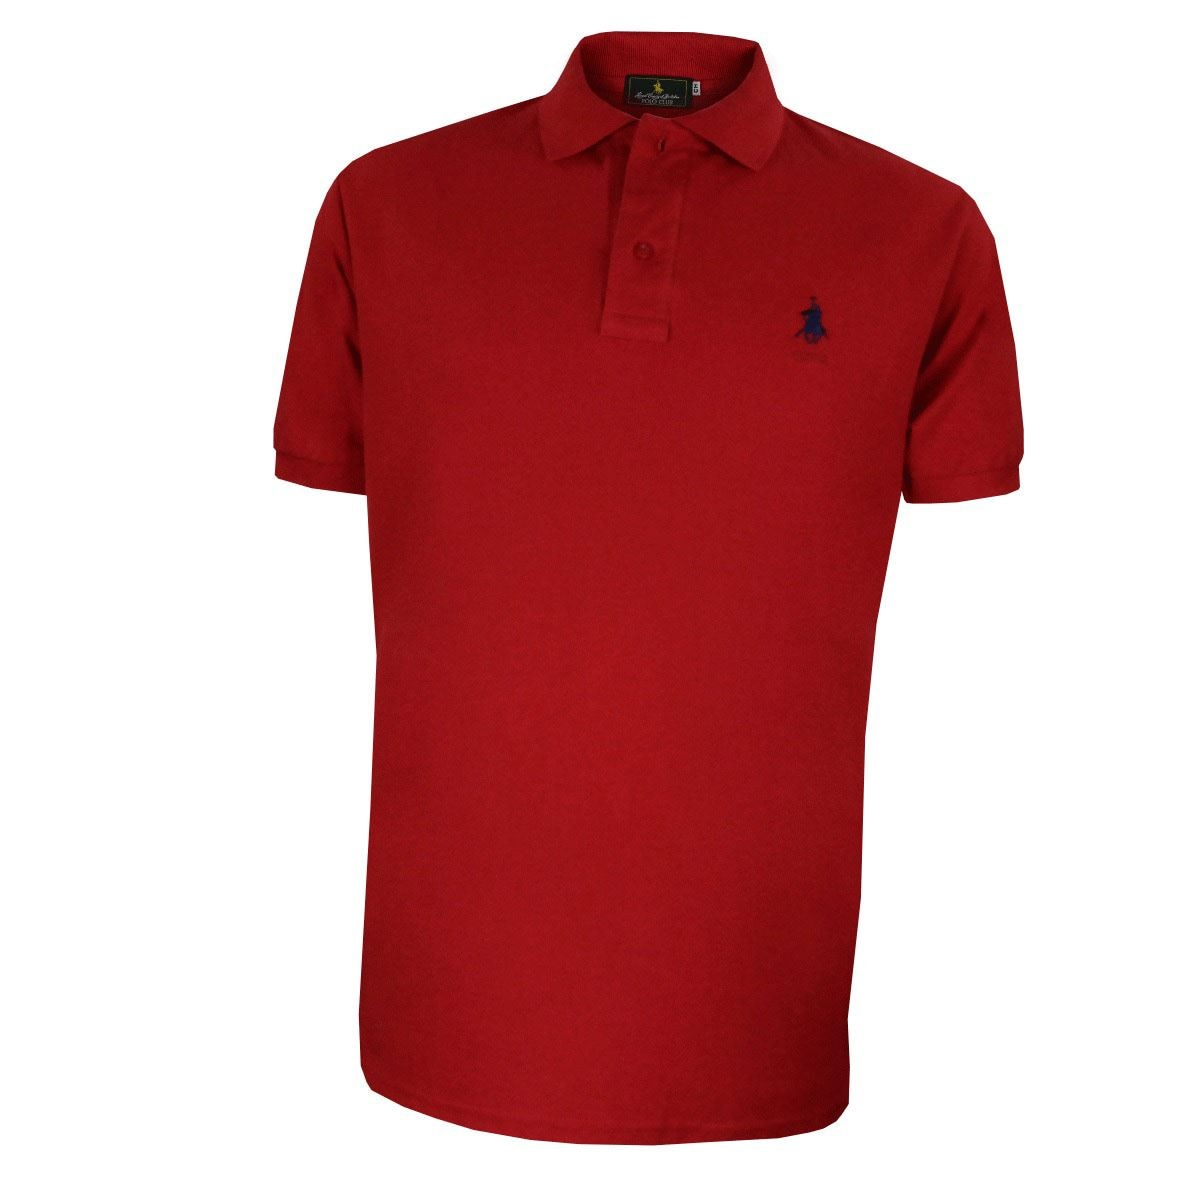 Playera polo club mc pique algodón gd rojo  - Sanborns